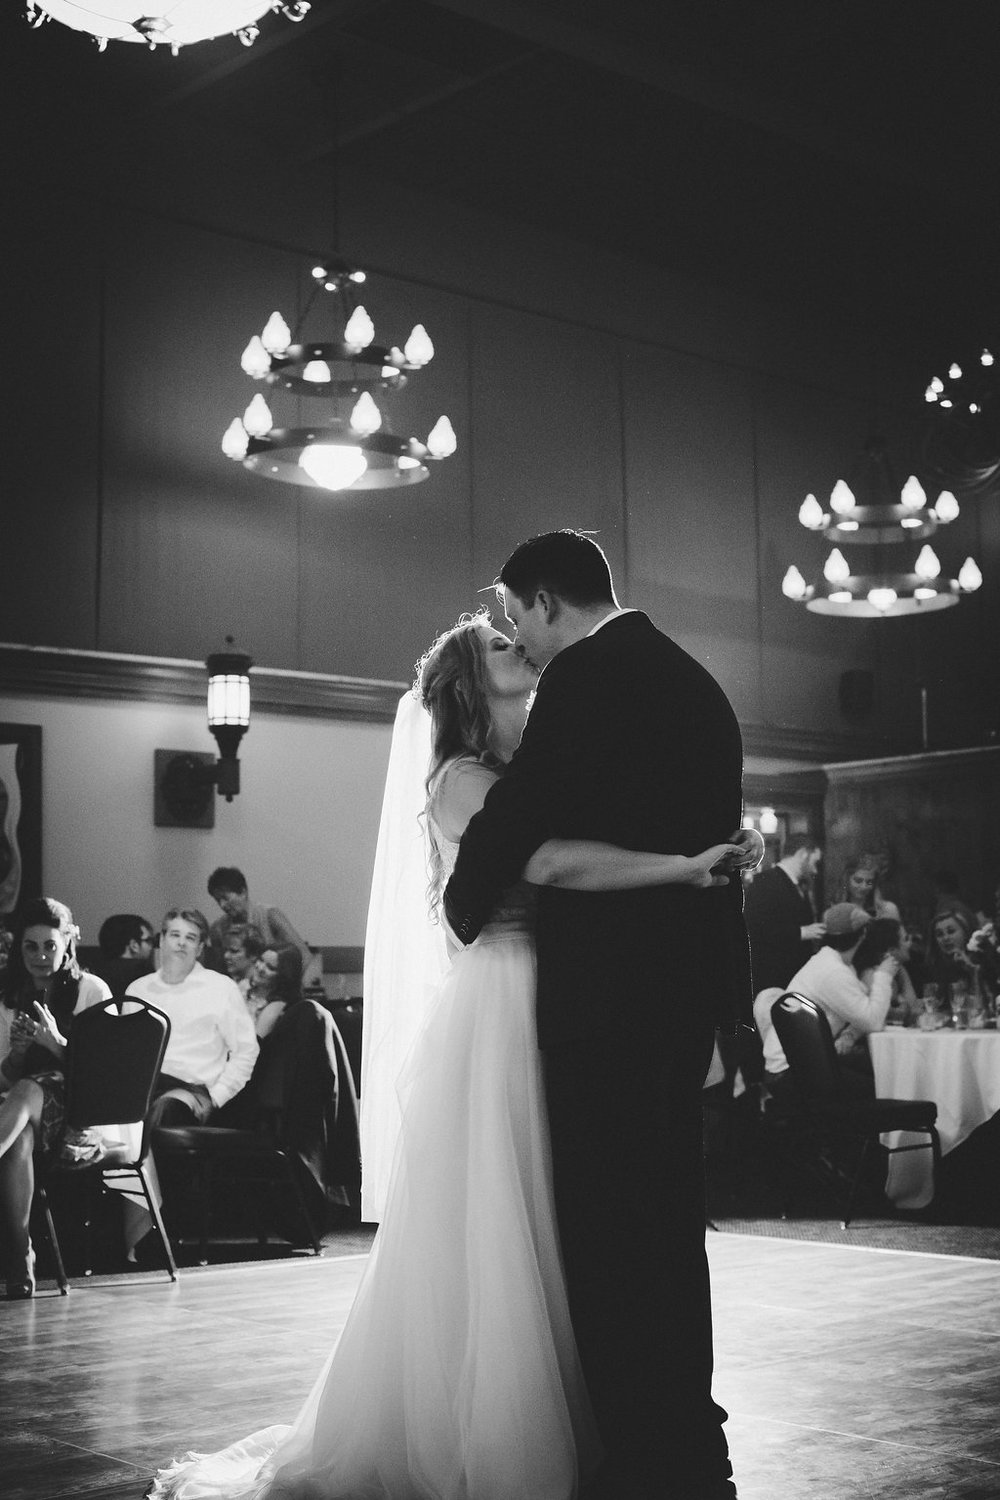 Nicole+Joe_Wedding_Seattle_McMennaminsBothell_6242015_124.jpg